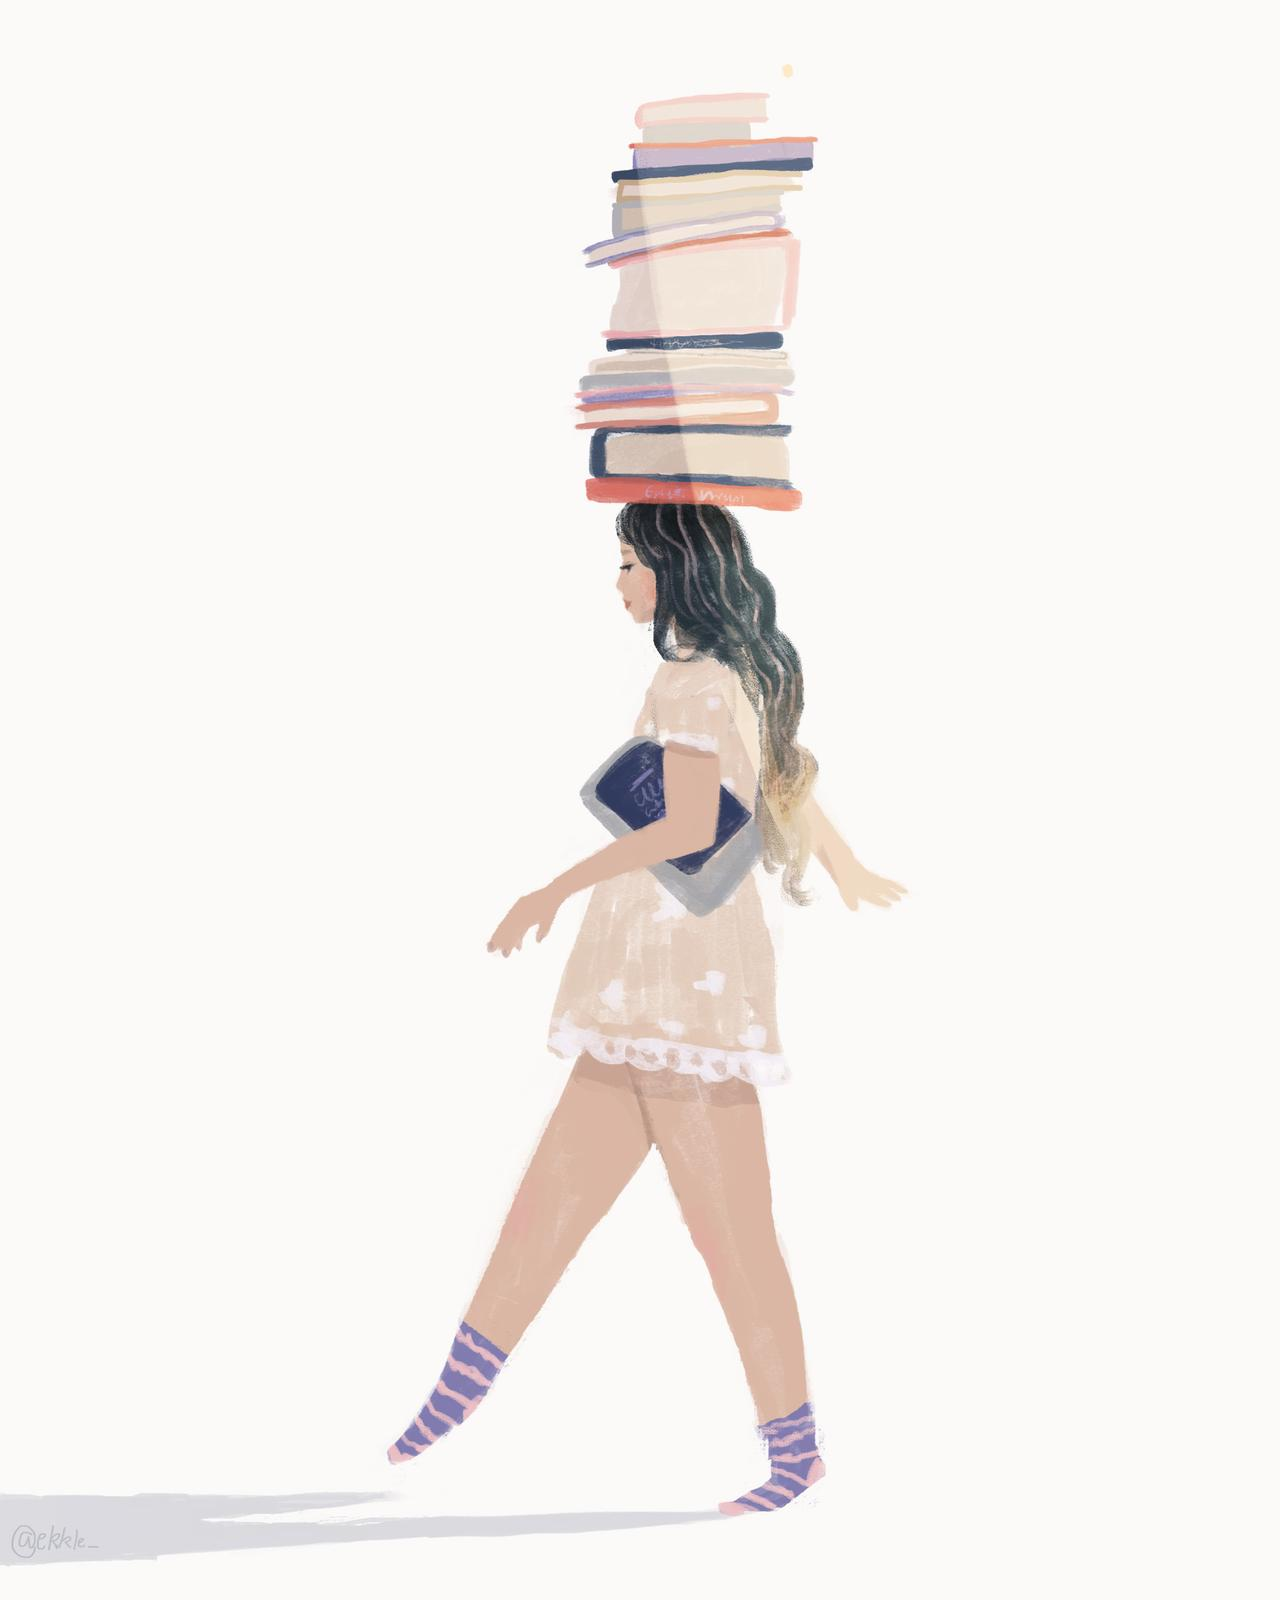 The Balancing Books print